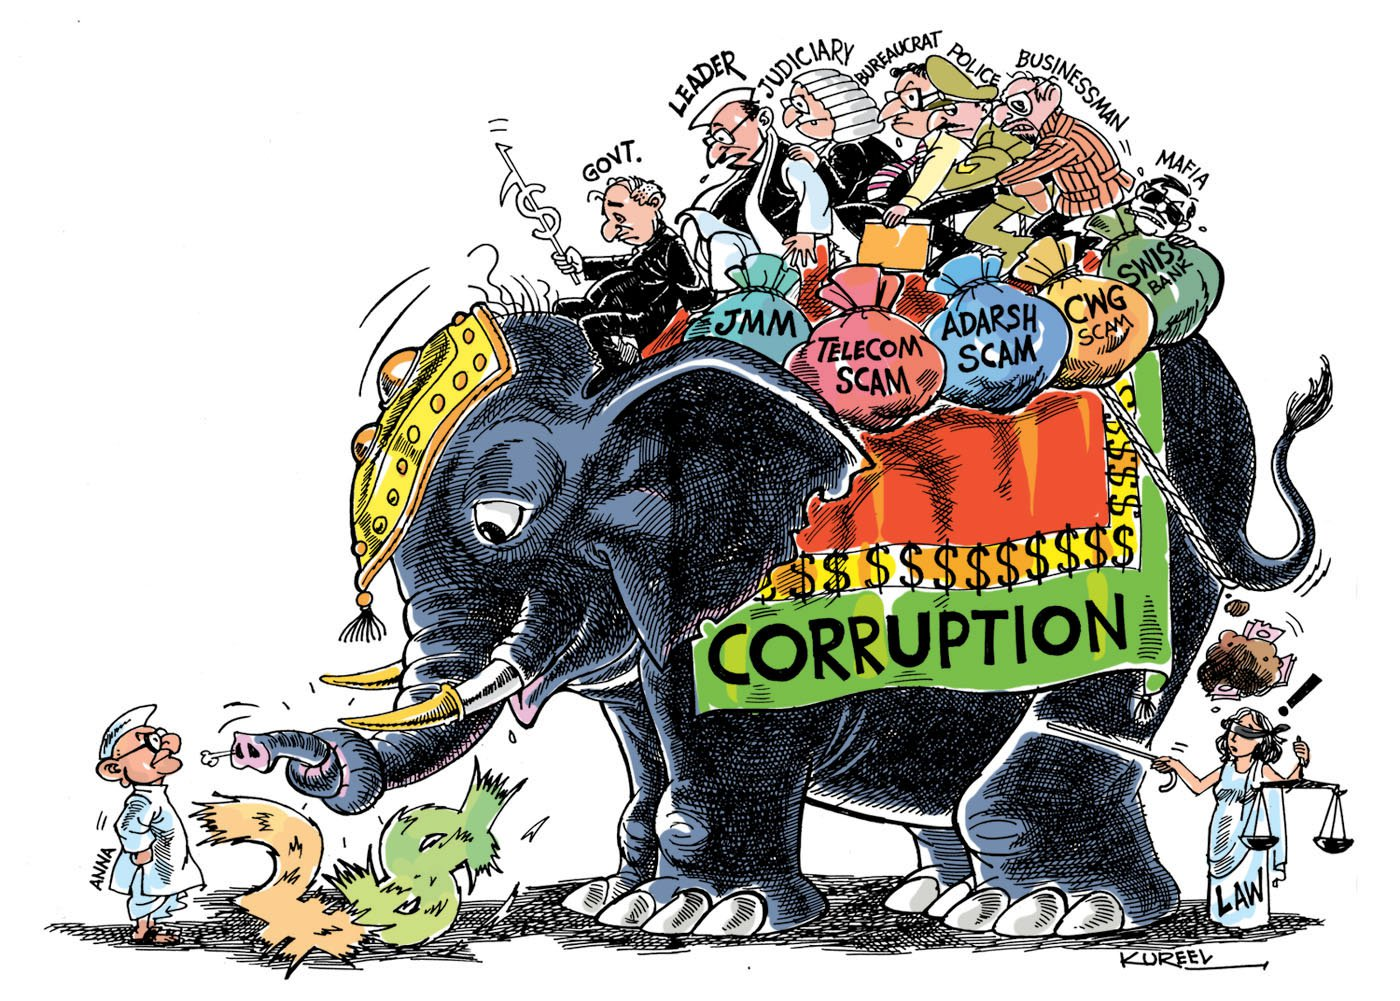 the most blutant forms of corruption